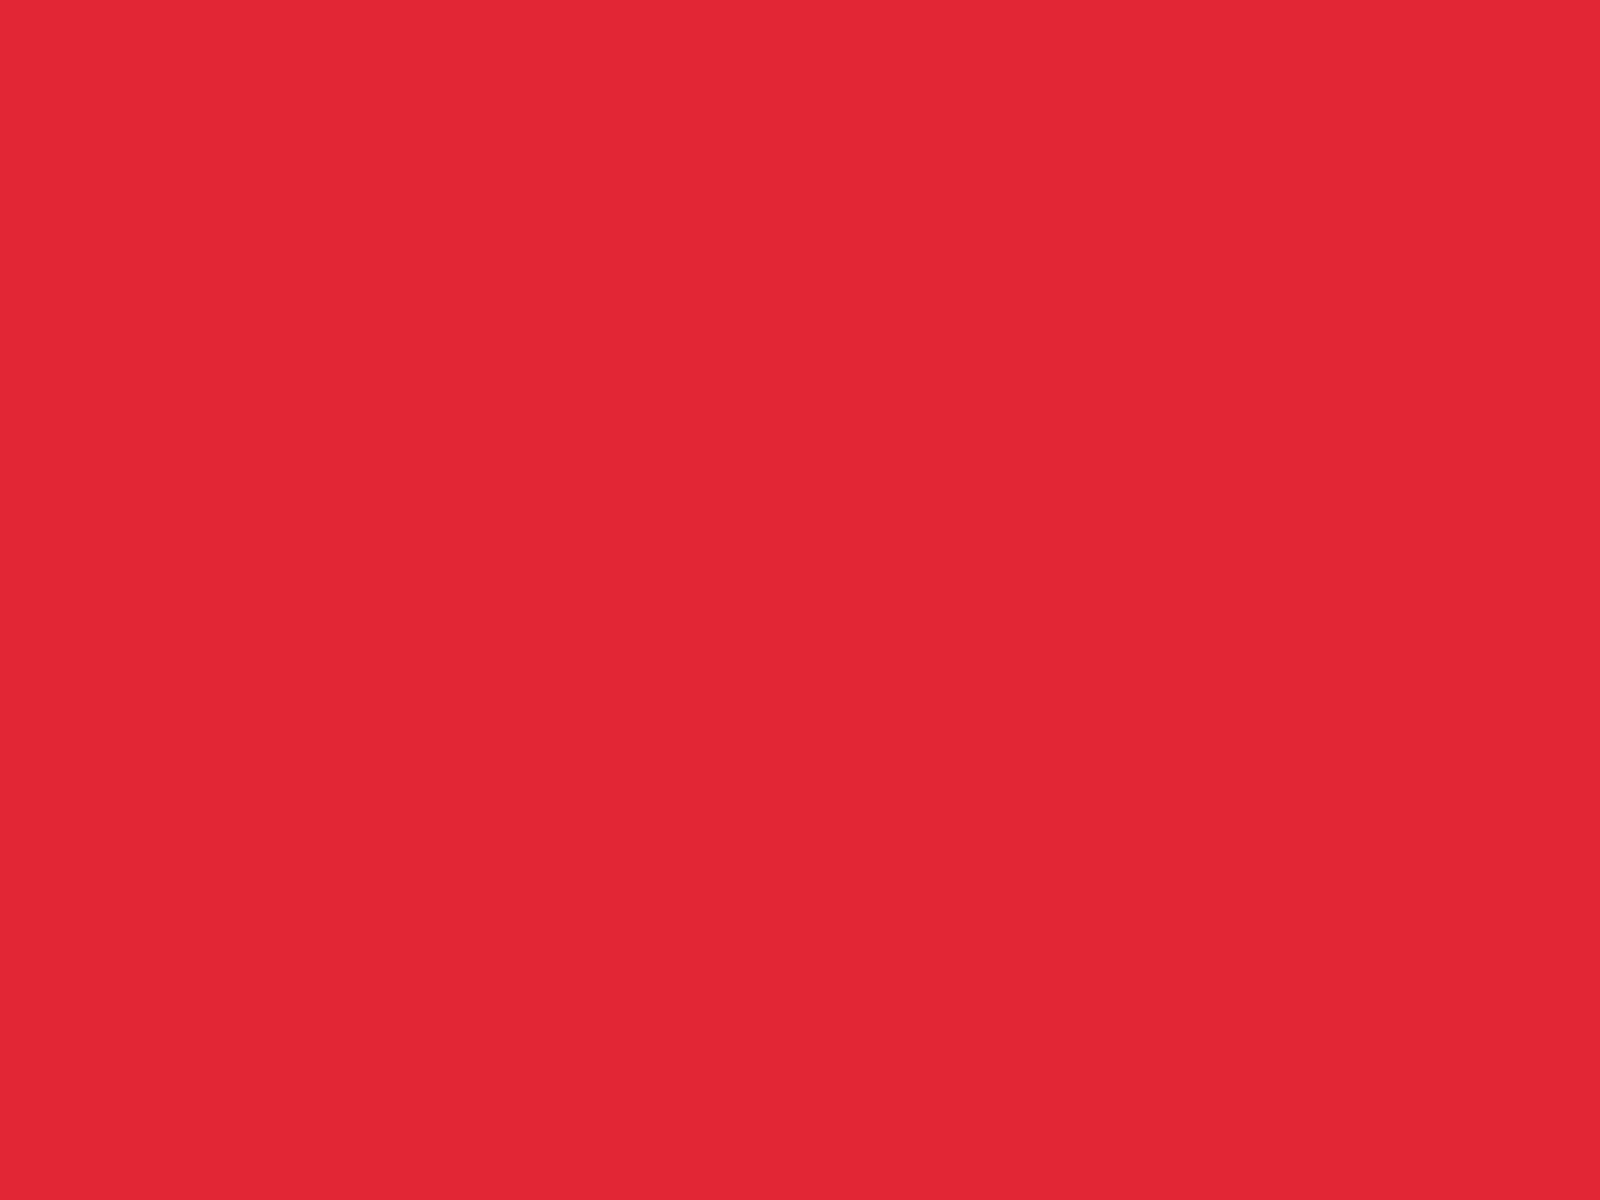 1600x1200 Alizarin Crimson Solid Color Background